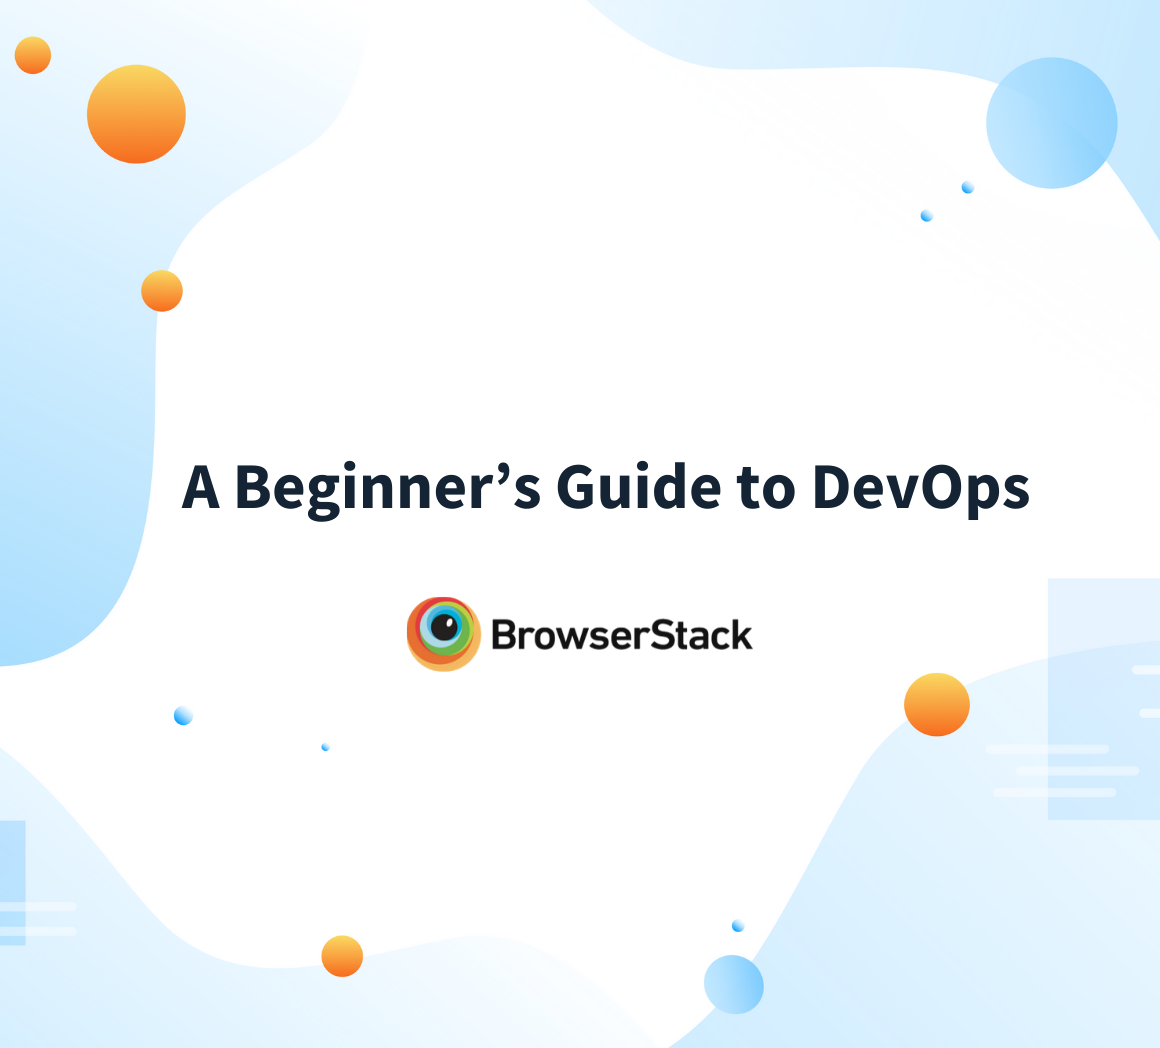 A Beginner's Guide to DevOps